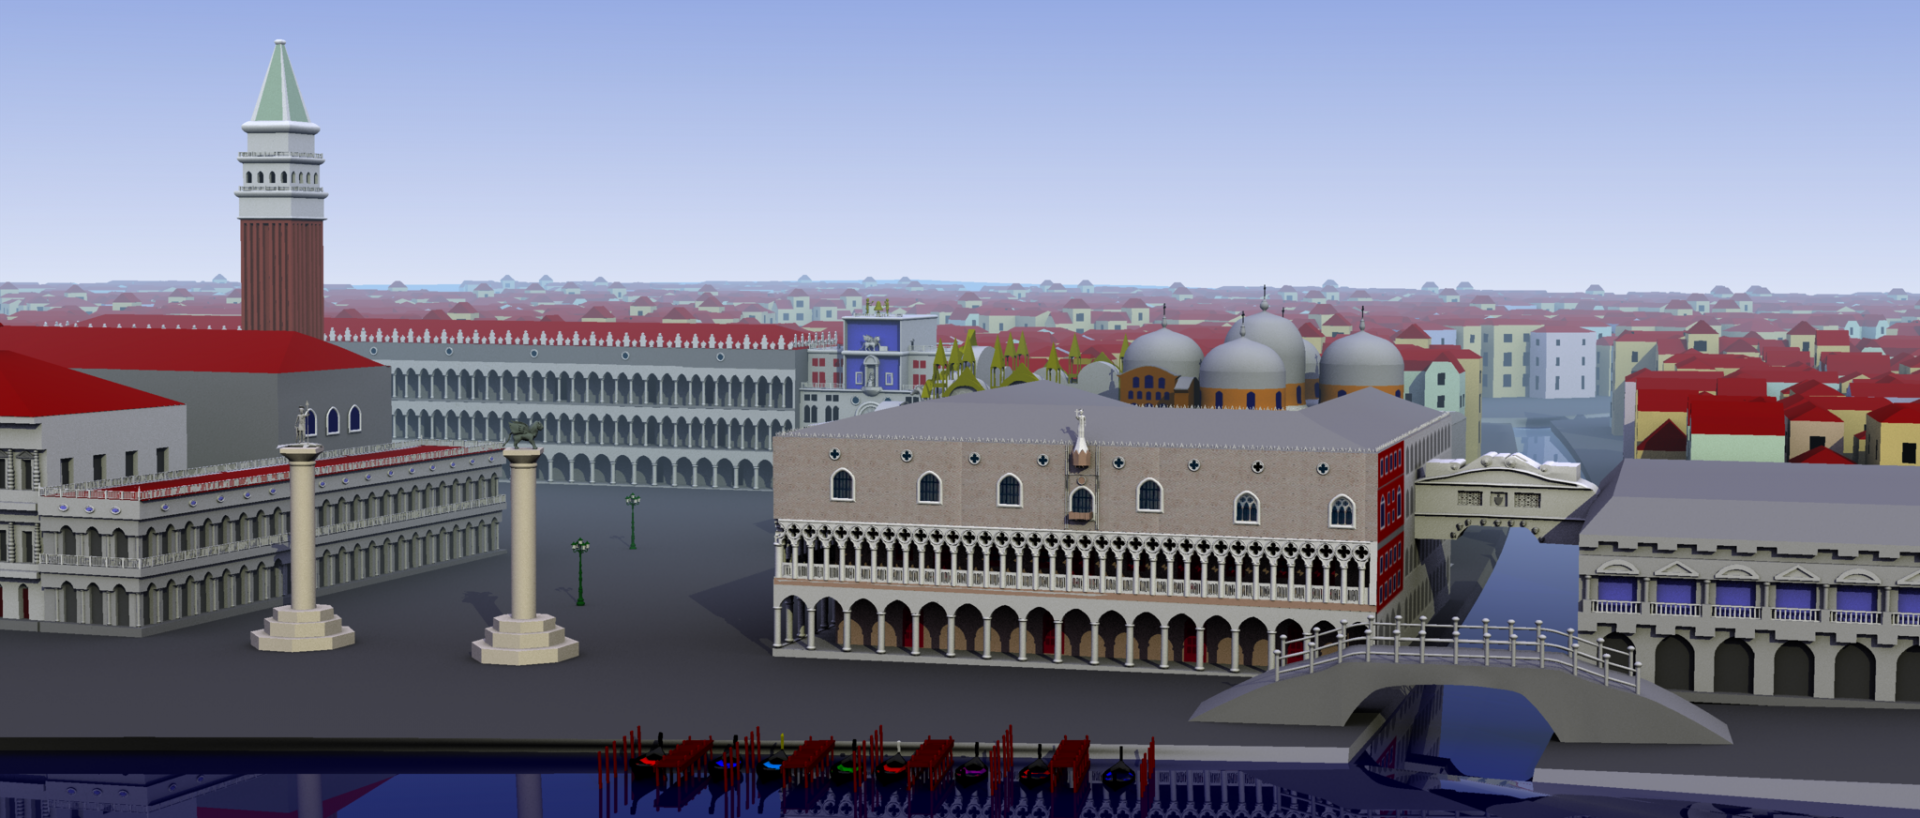 Venice in progress AOk  fog0.png